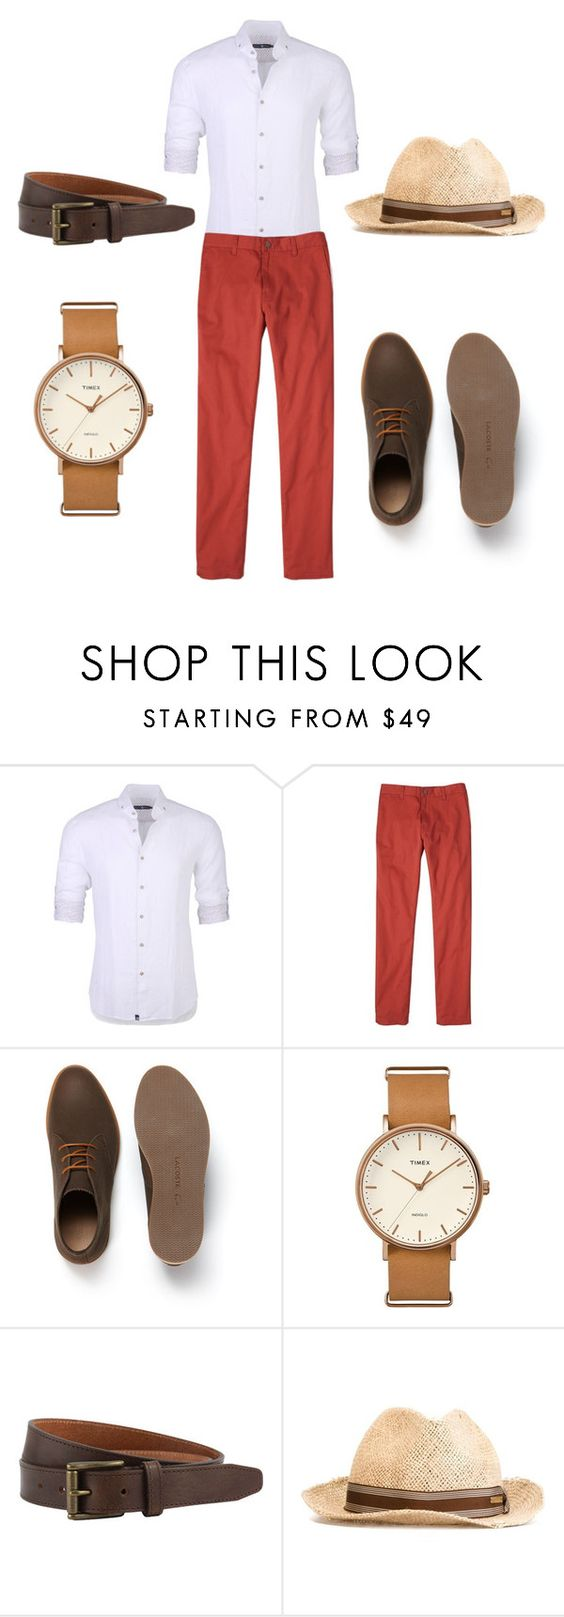 """Summer Dapper-ish"" by diamond-winstead ❤ liked on Polyvore featuring Stone Rose, prAna, Lacoste, Timex, The British Belt Company, men's fashion and menswear"